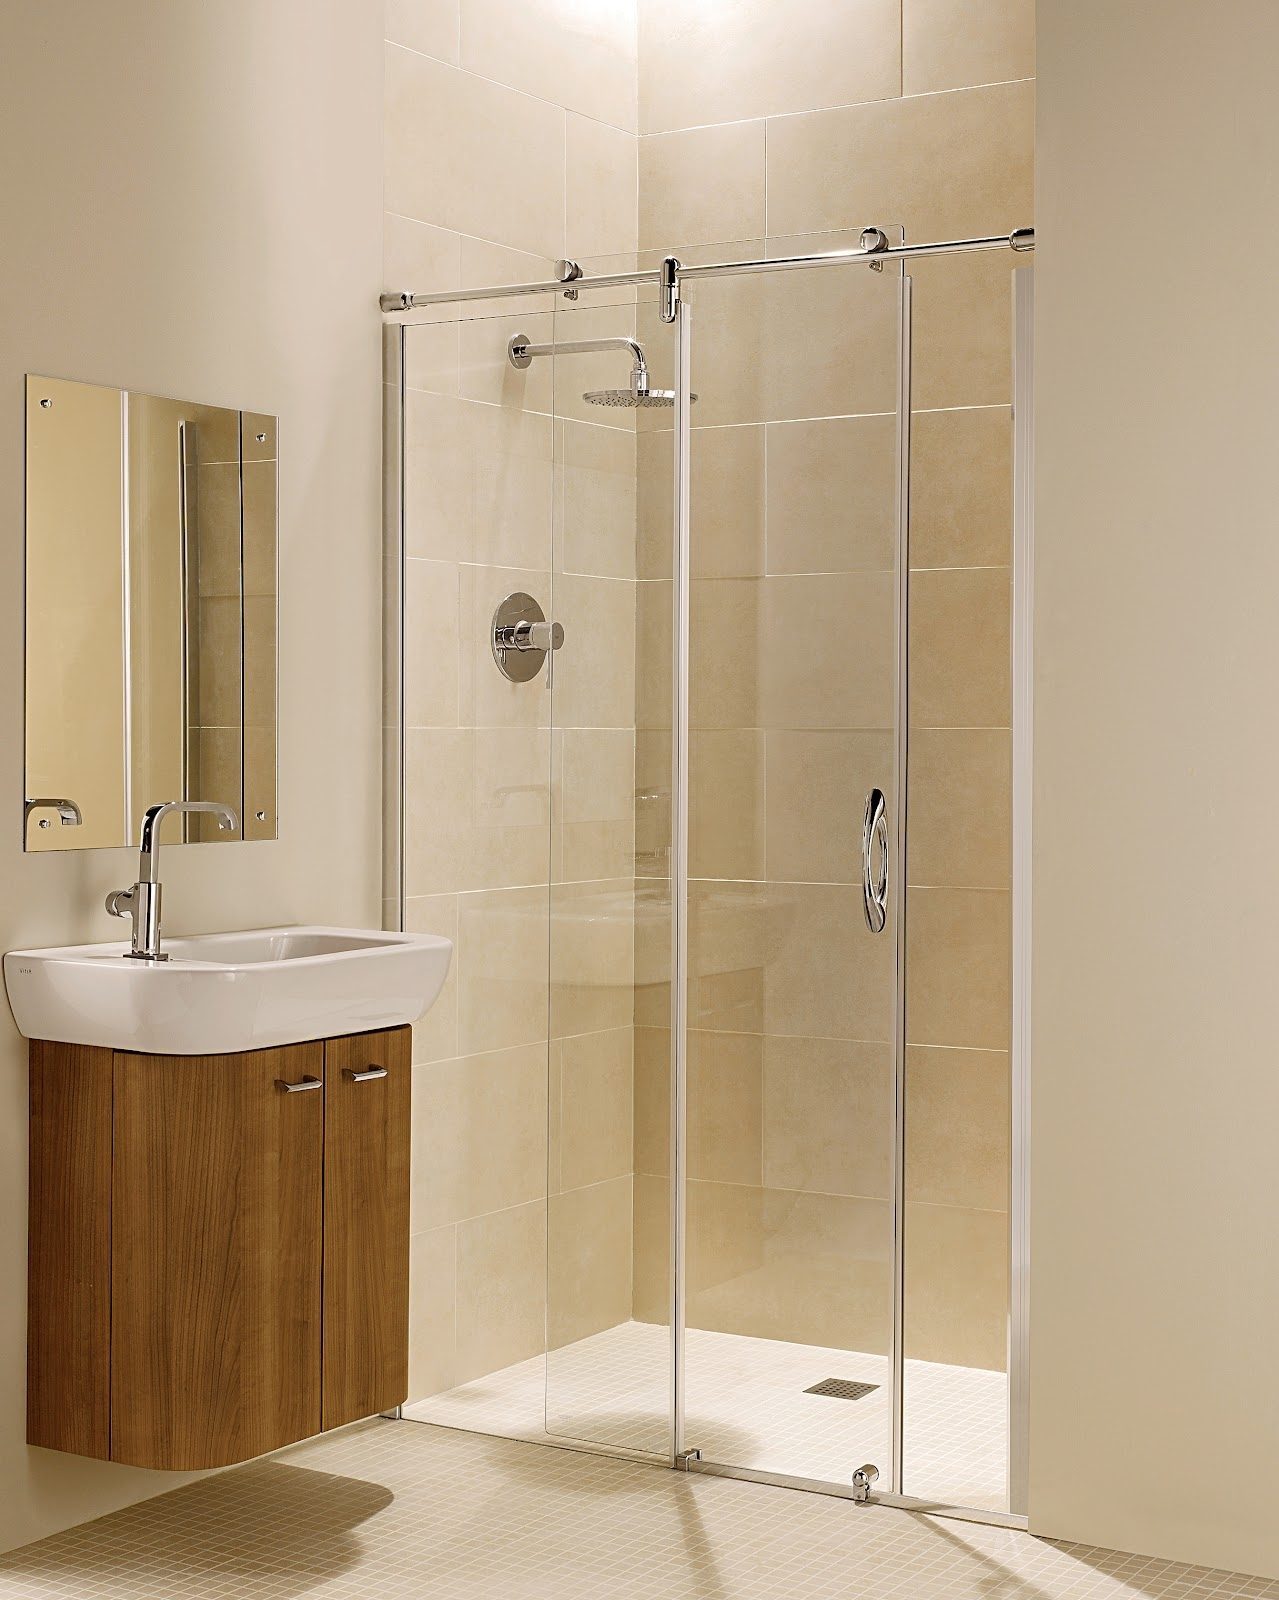 Sliding Shower Doors Over Bathtubframeless sliding shower doors